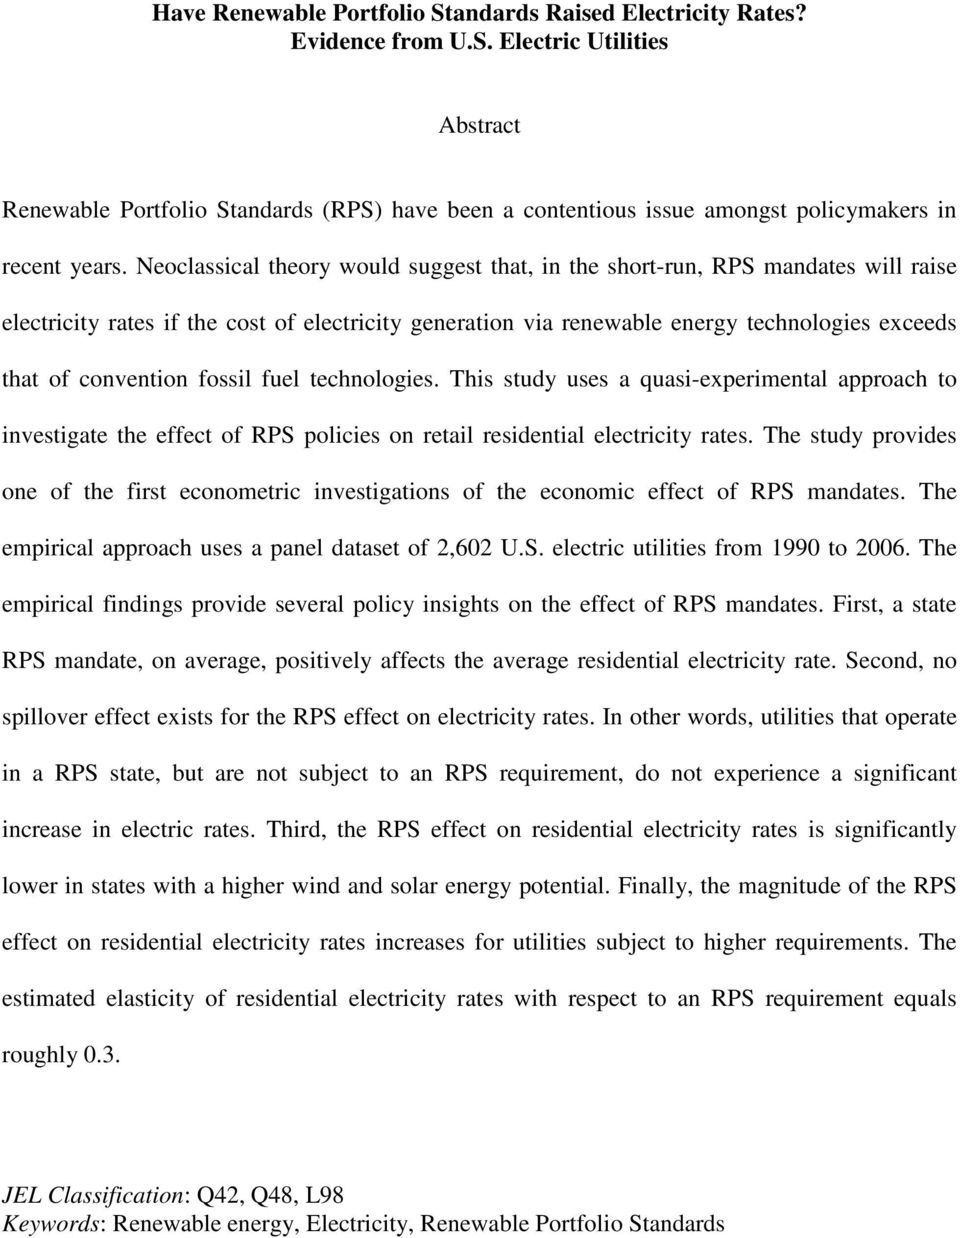 fossil fuel technologies. This study uses a quasi-experimental approach to investigate the effect of RPS policies on retail residential electricity rates.